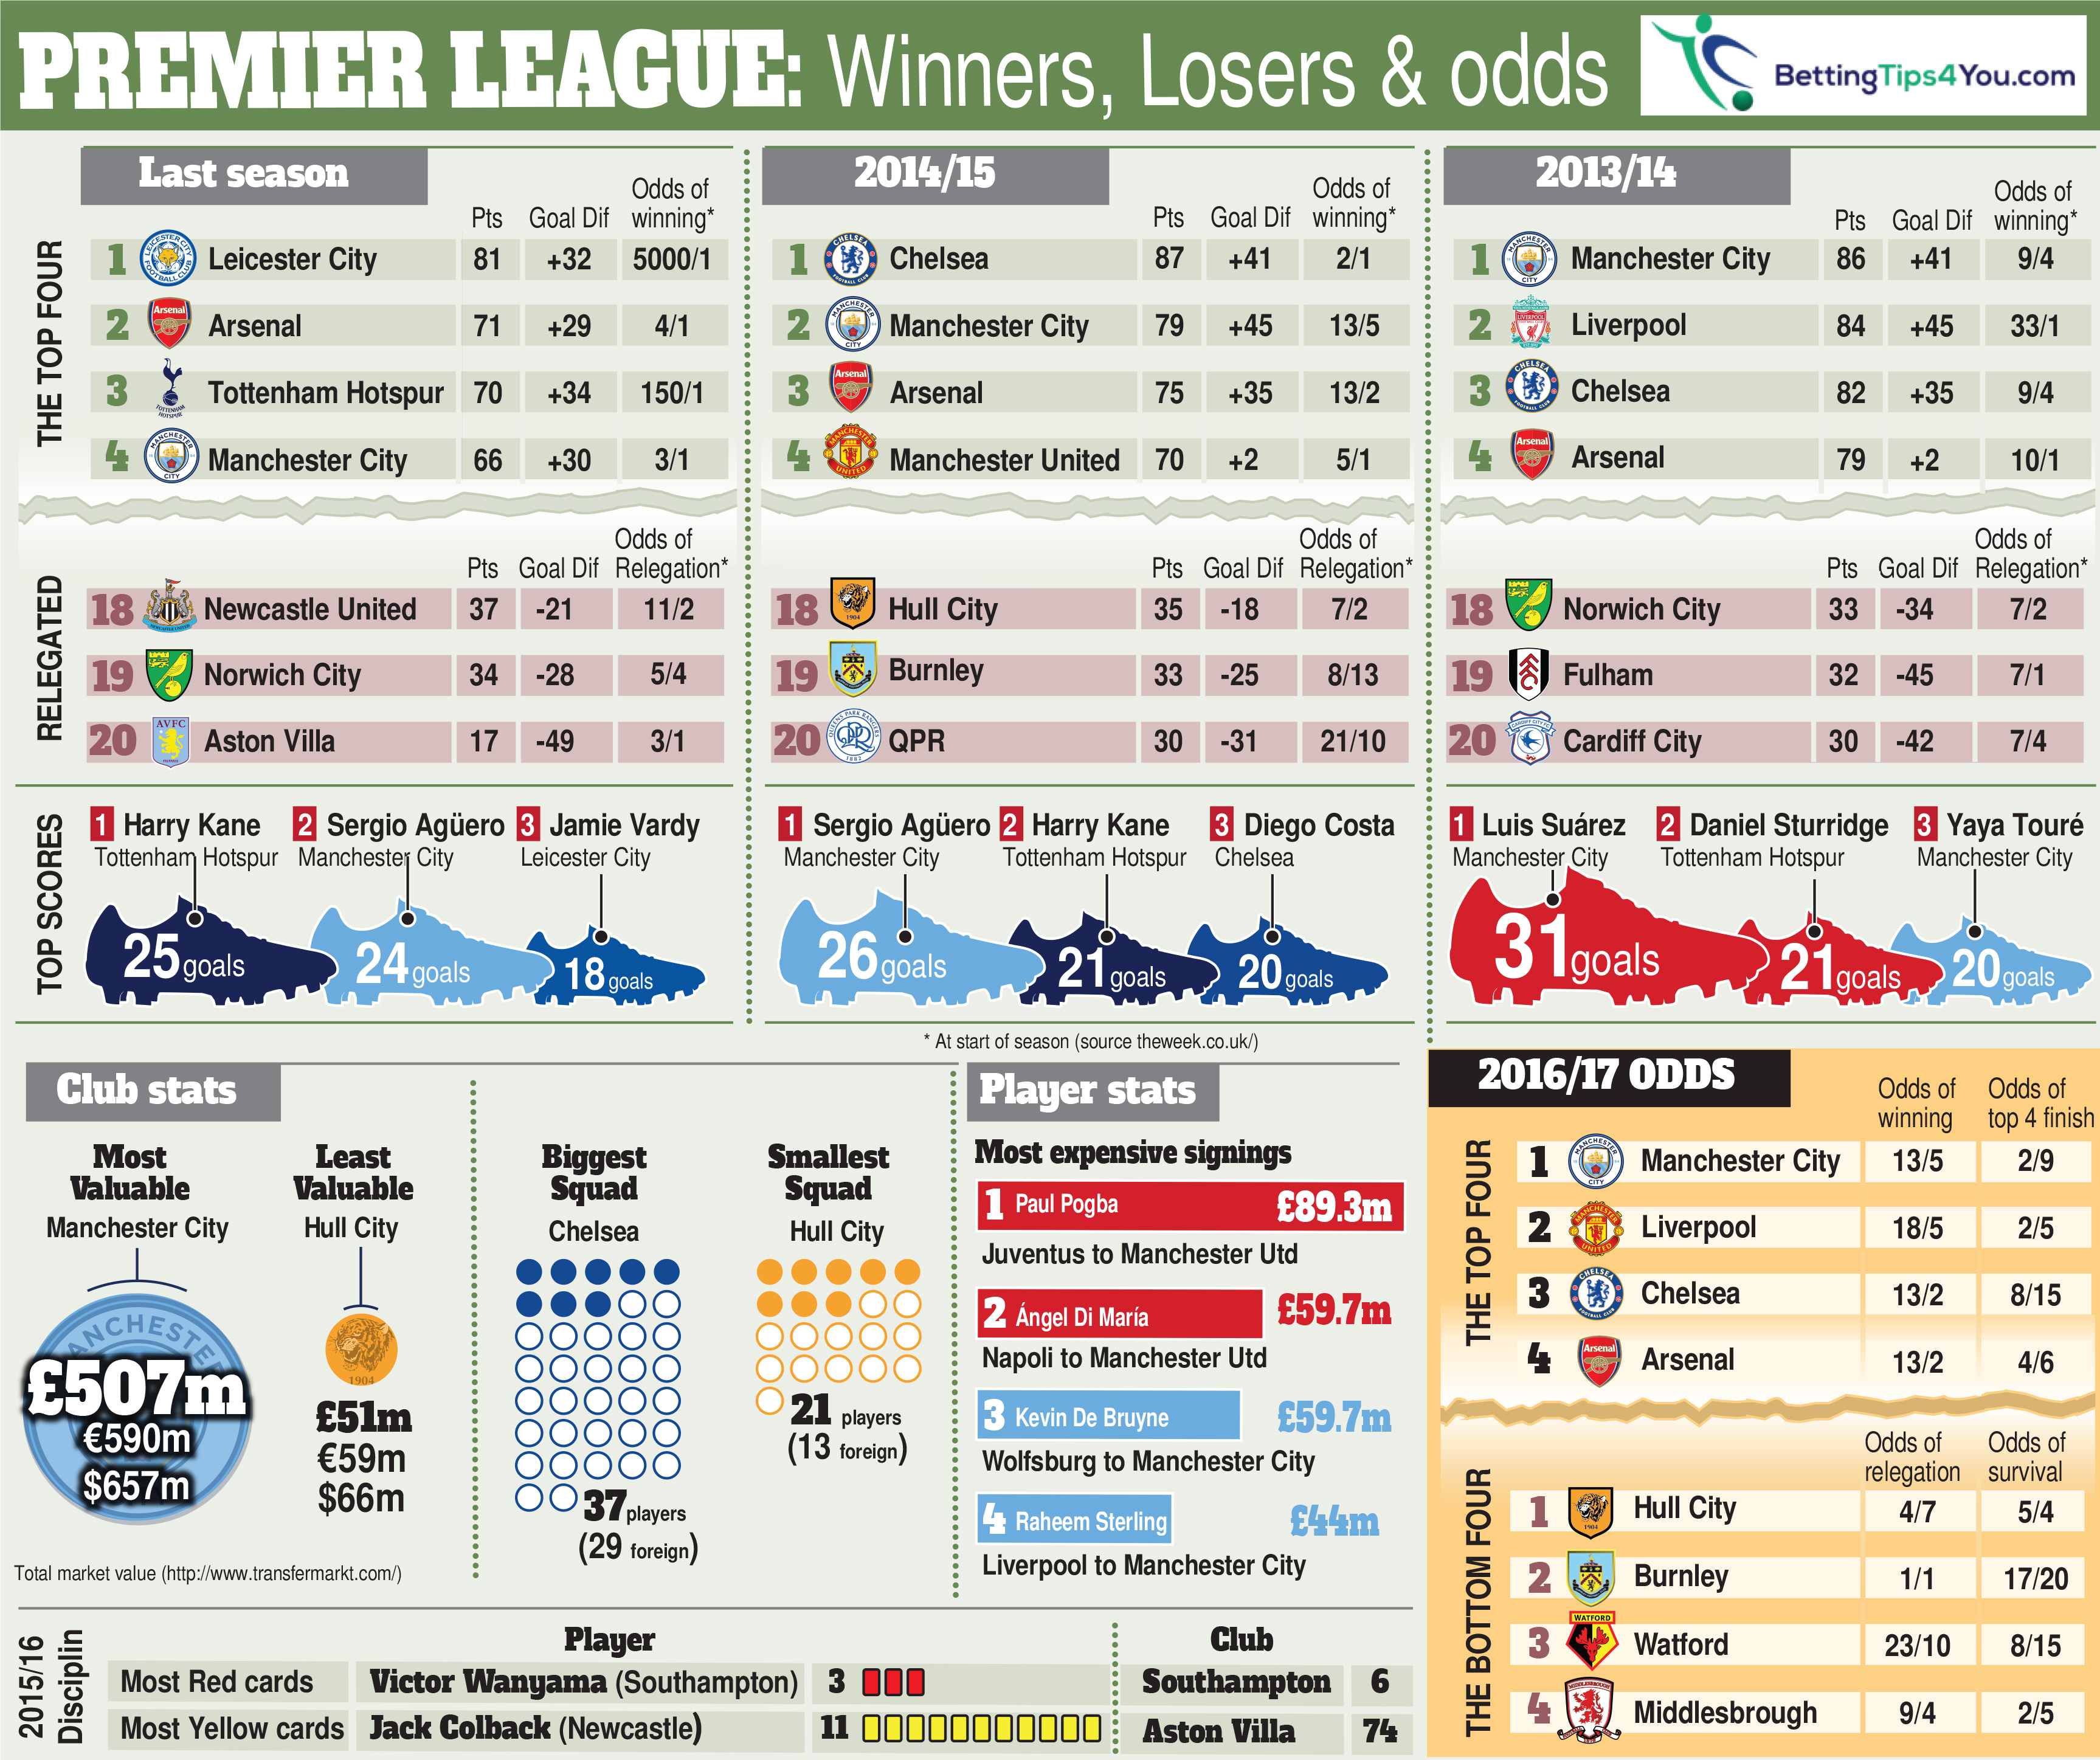 No love for champs Leicester City as EPL punters favor Manchester City